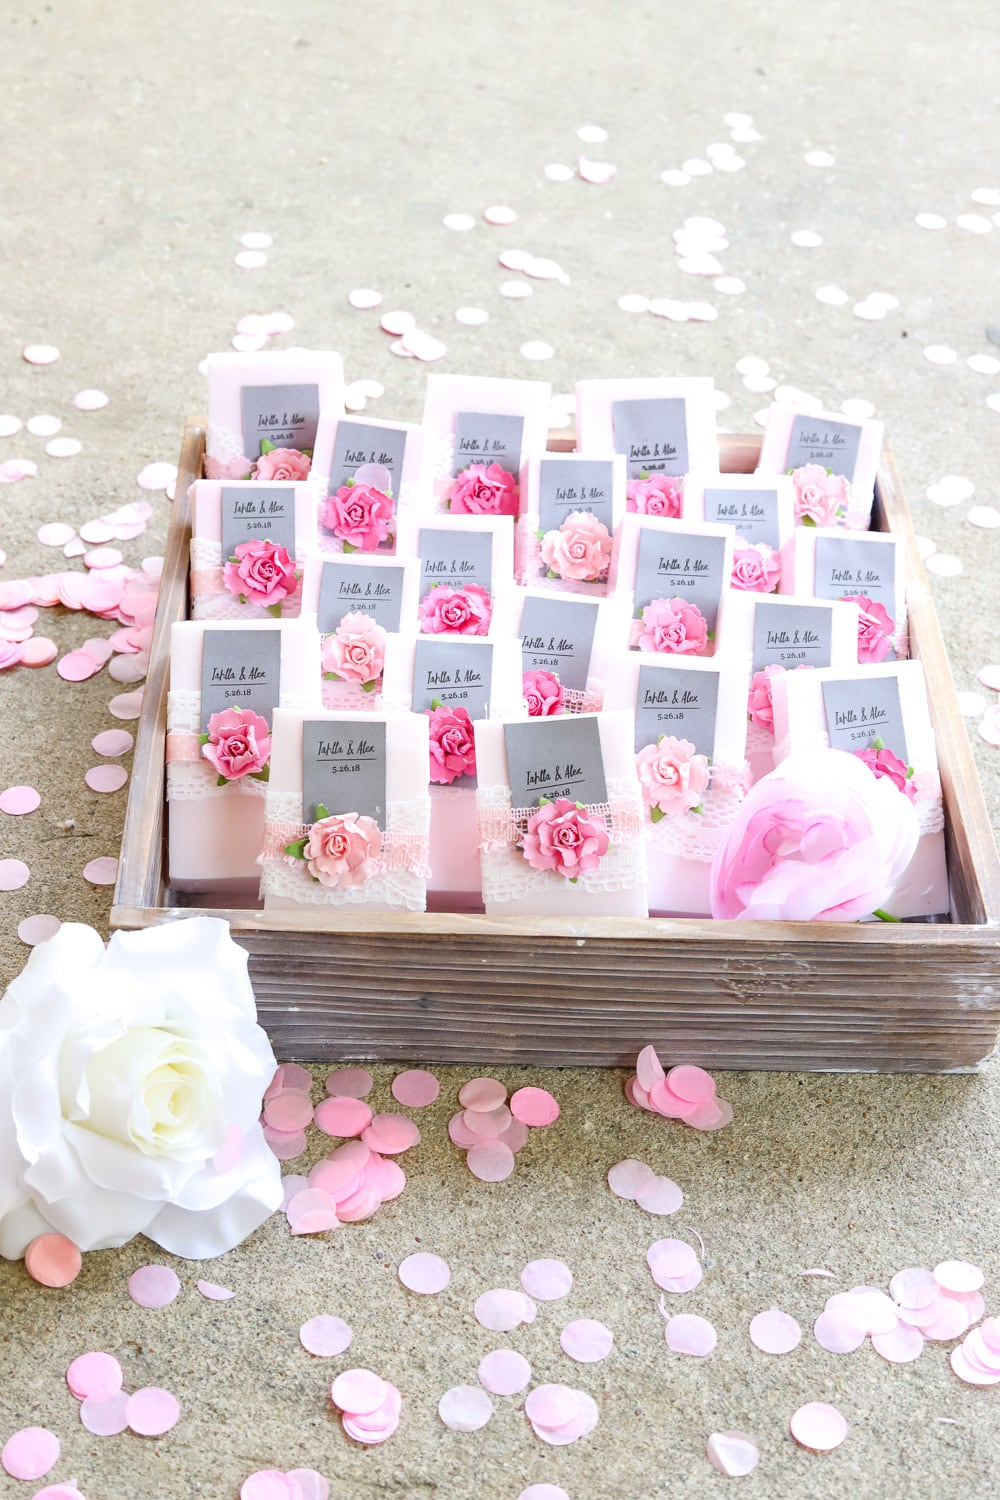 Easy DIY Wedding Favor: Personalized Soap - Run To Radiance